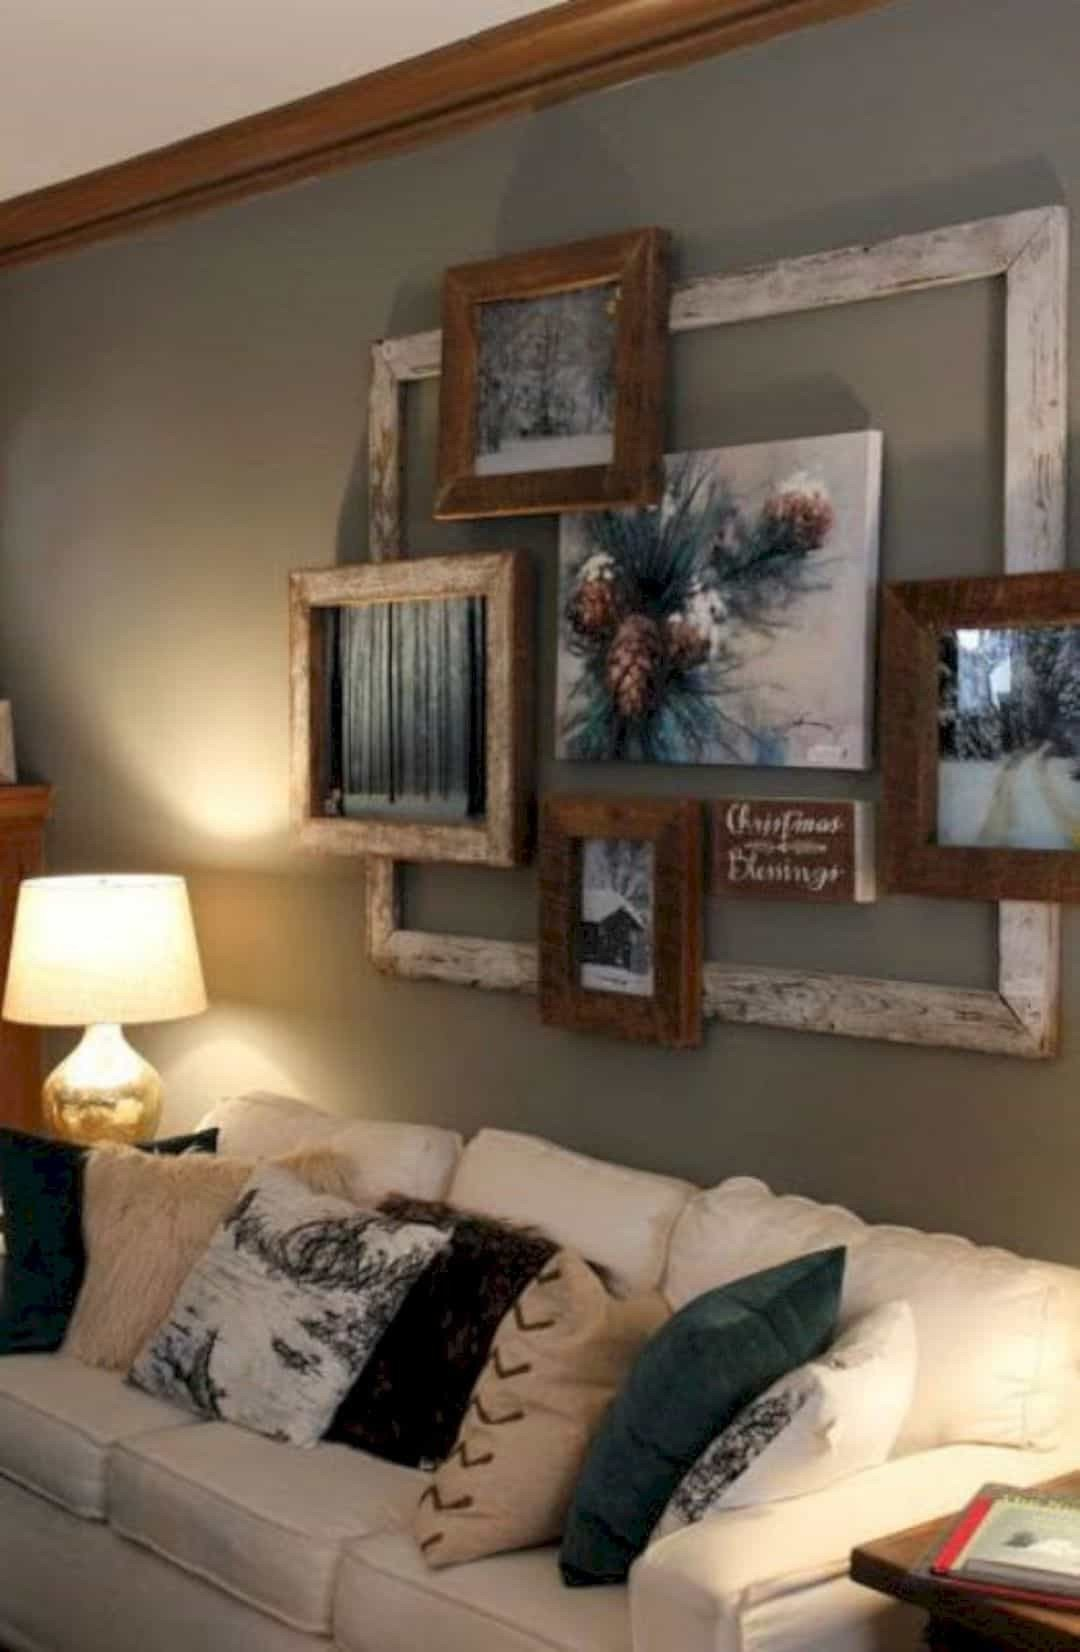 Diy Living Room Decor Ideas Fresh 17 Diy Rustic Home Decor Ideas for Living Room